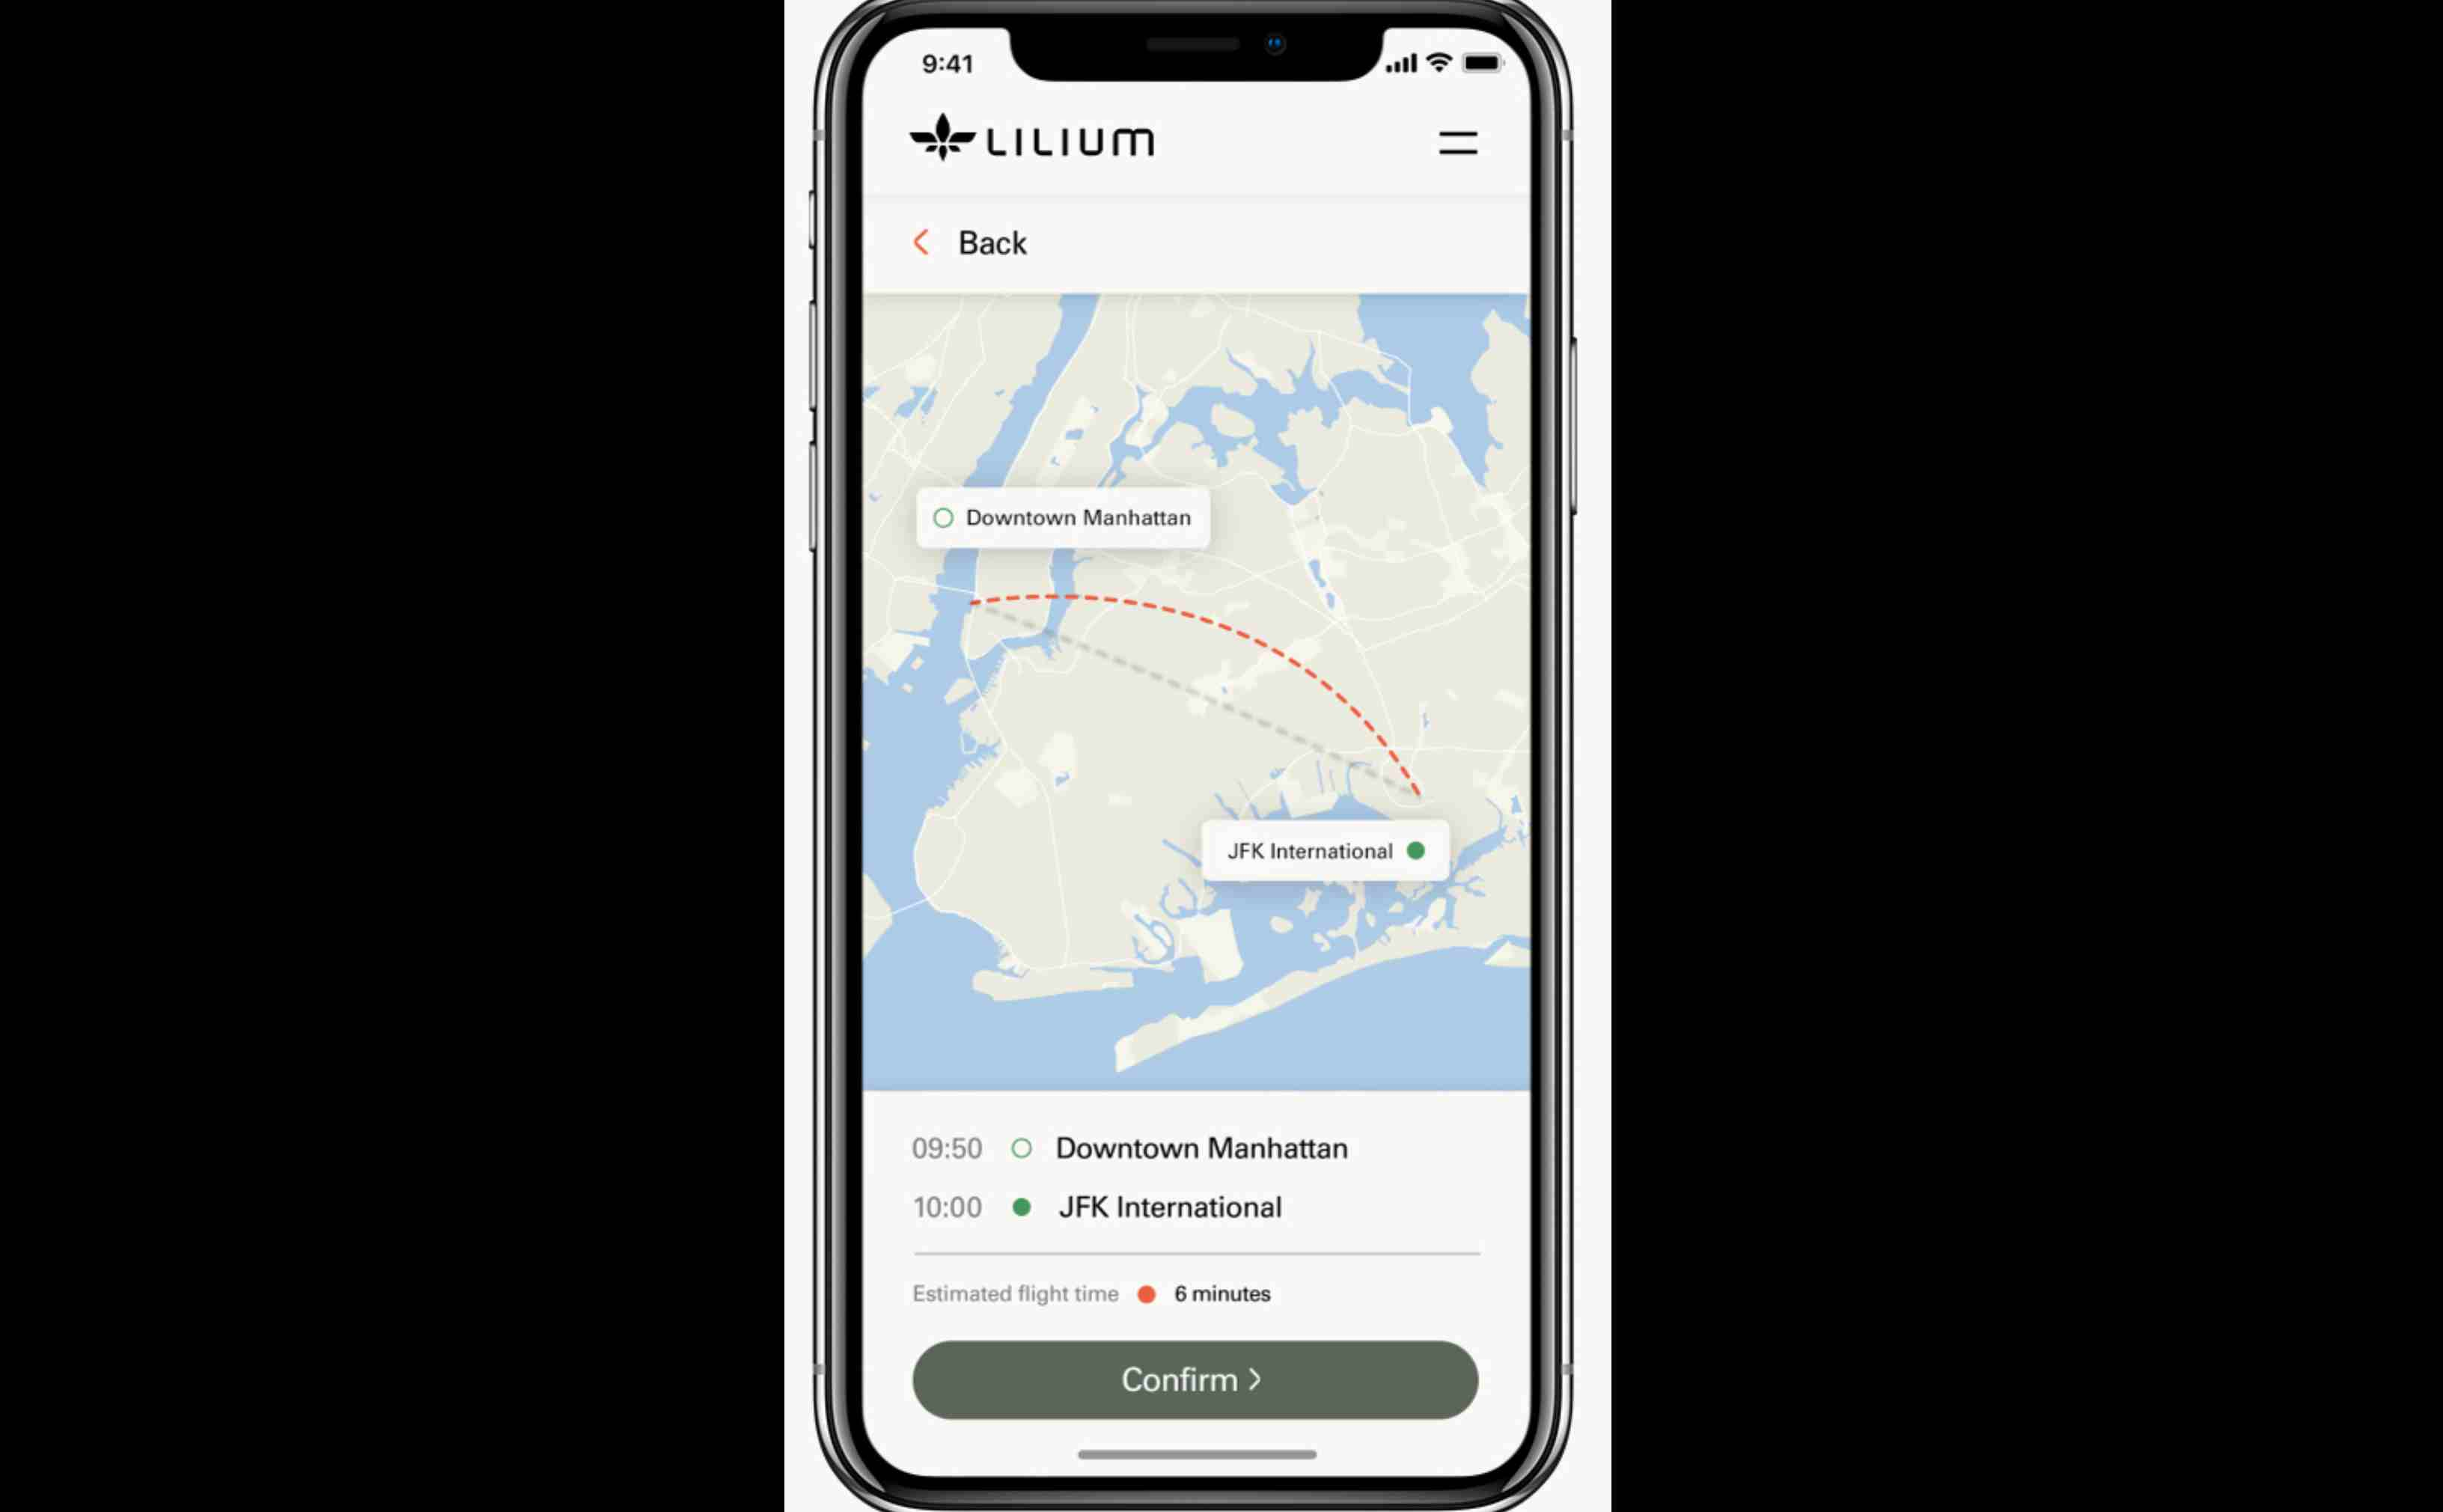 Though the company has not begun commercial production yet, it is developing a smartphone app which can be used to hail Lilium's services as a taxi. (Image: Lilium)